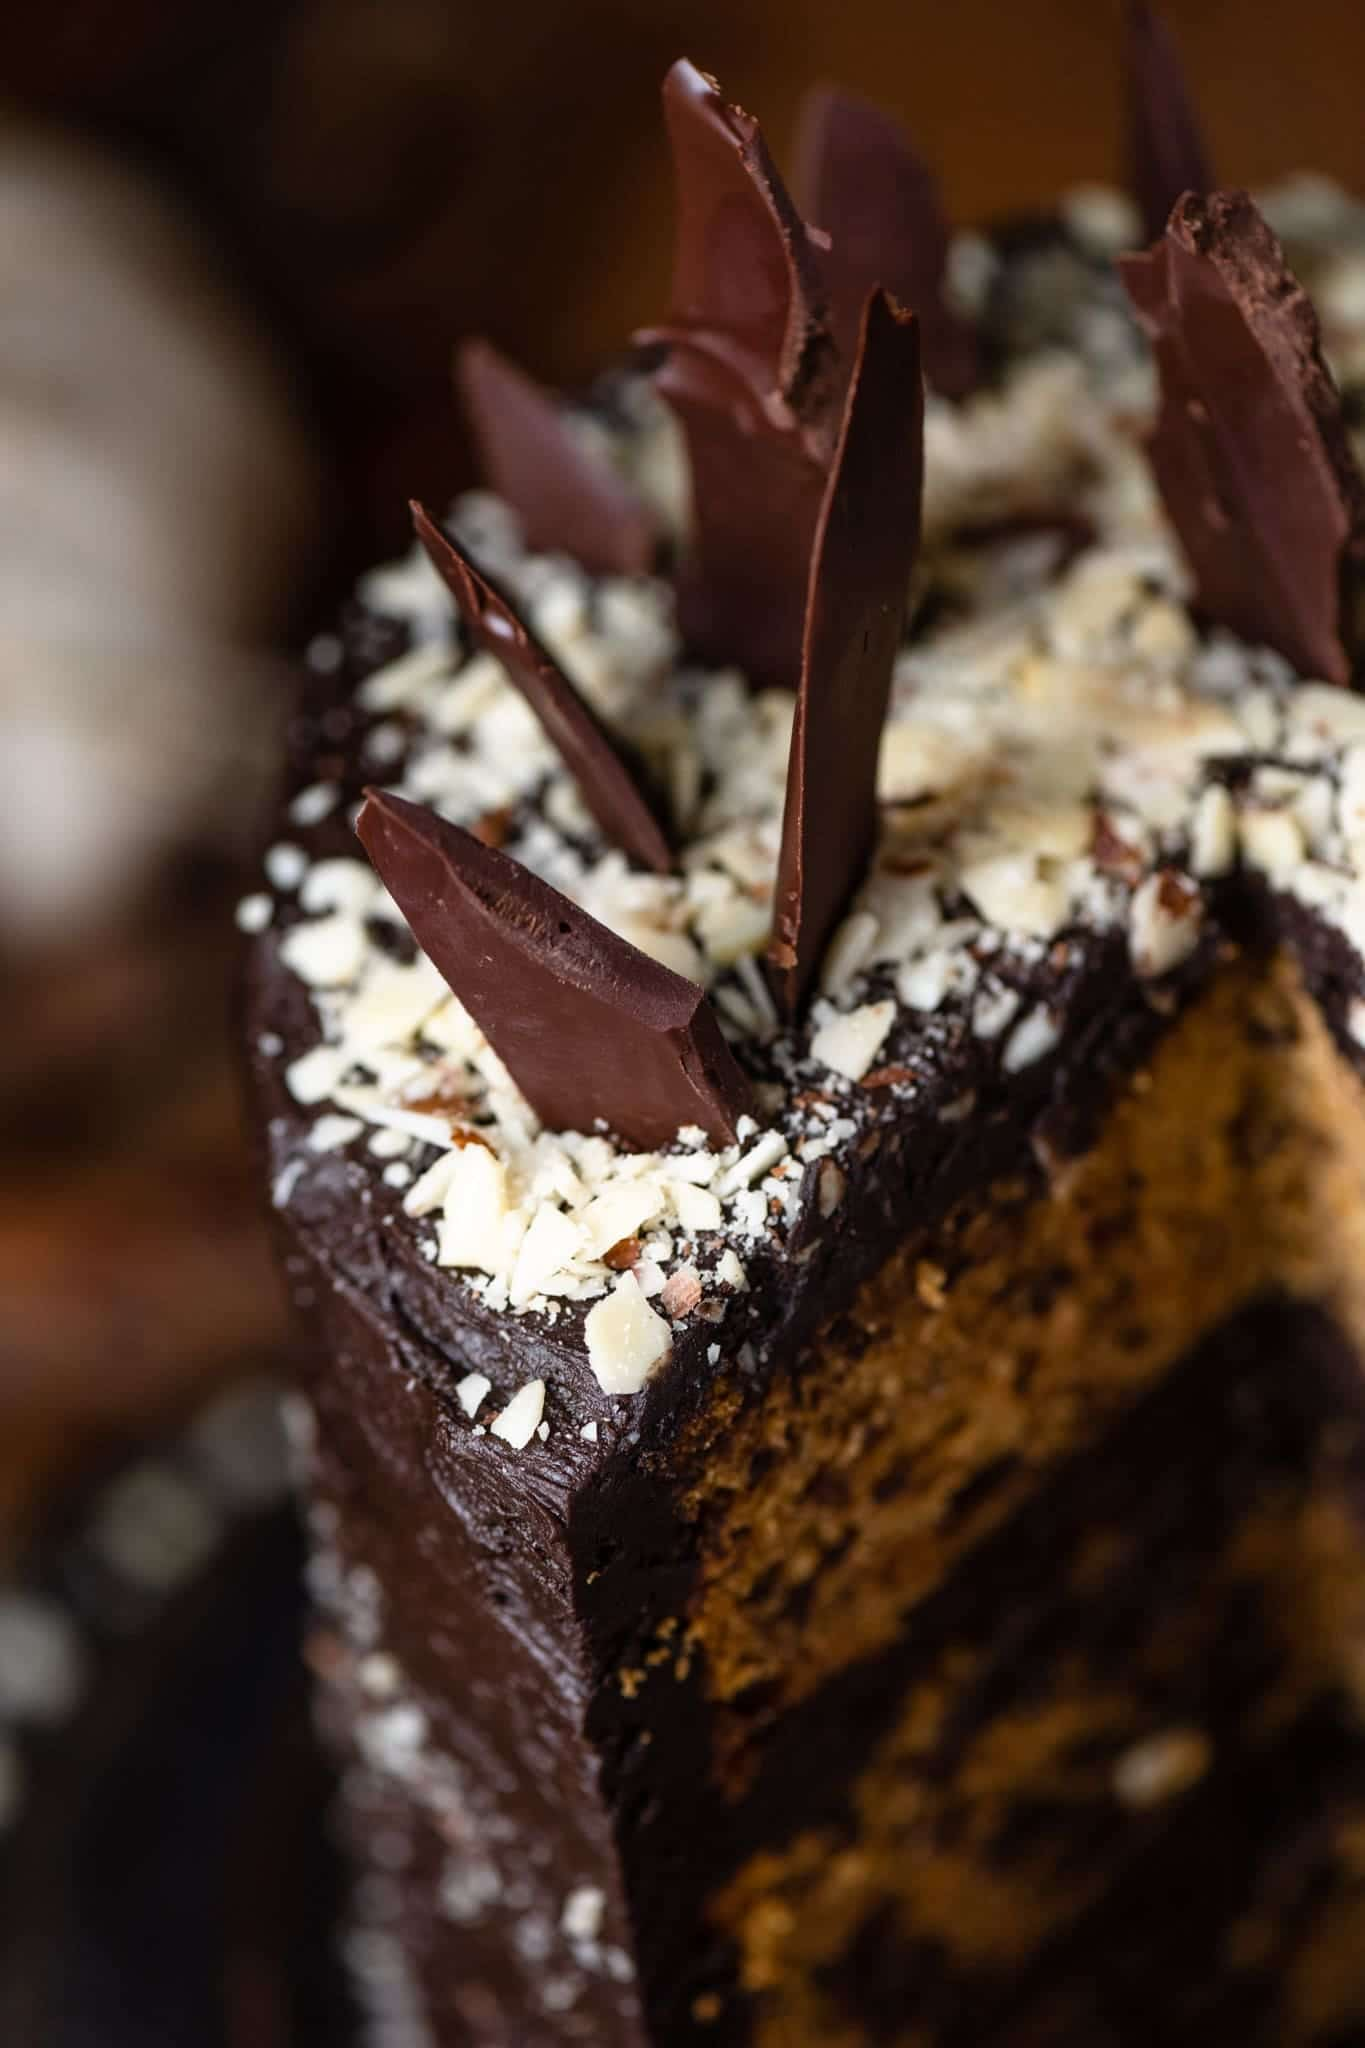 Chocolate layer cake with chocolate shards